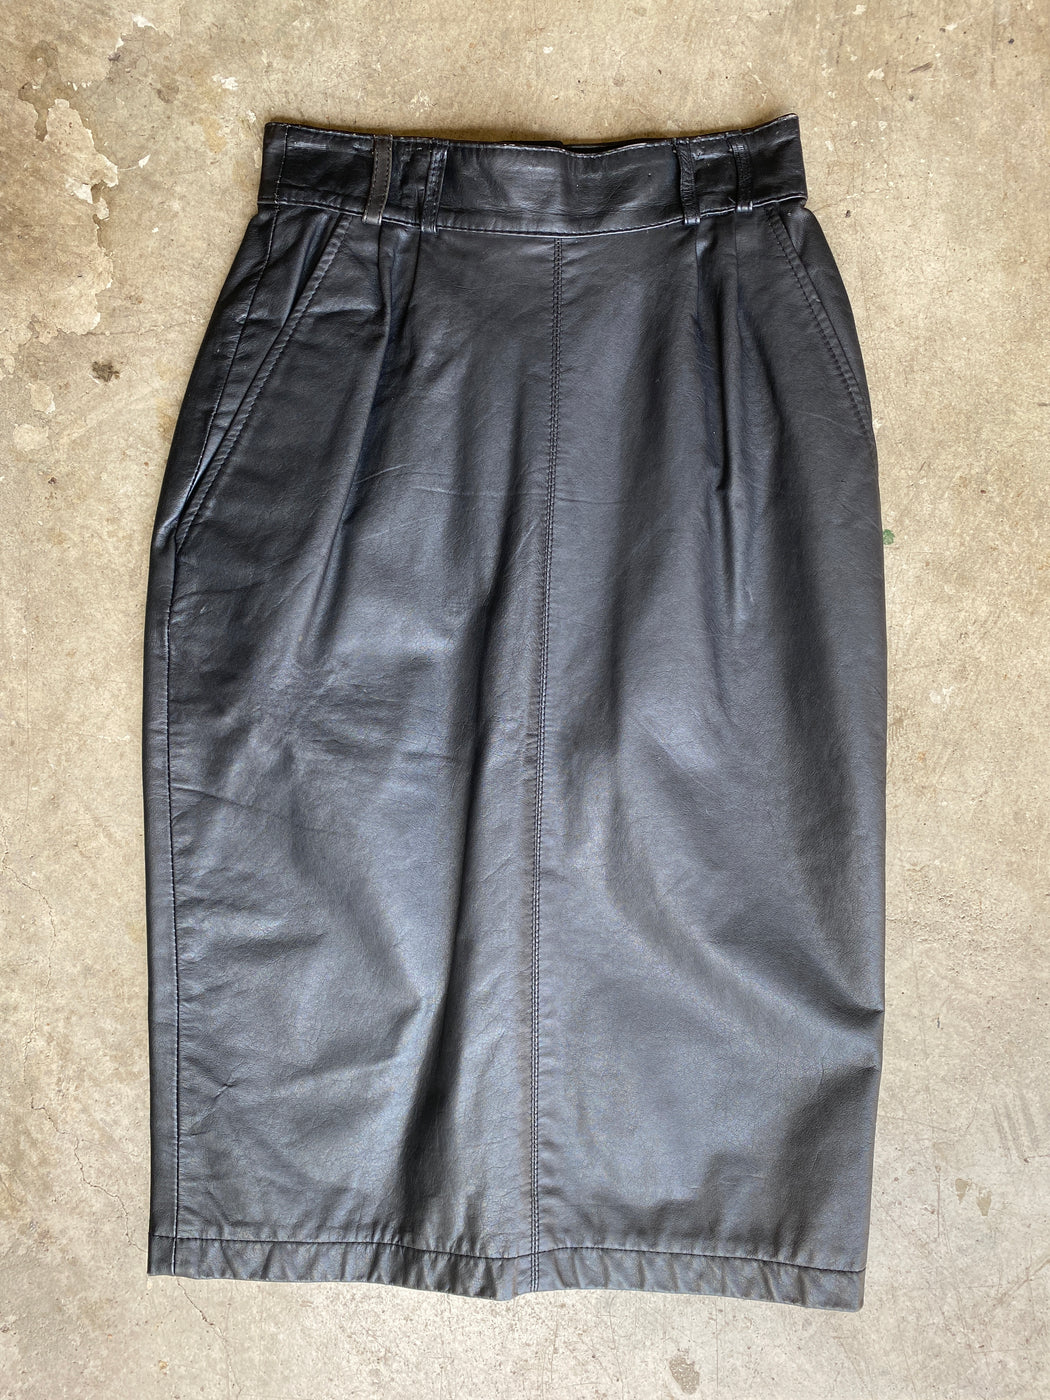 Black Leather Pleated Pencil Skirt